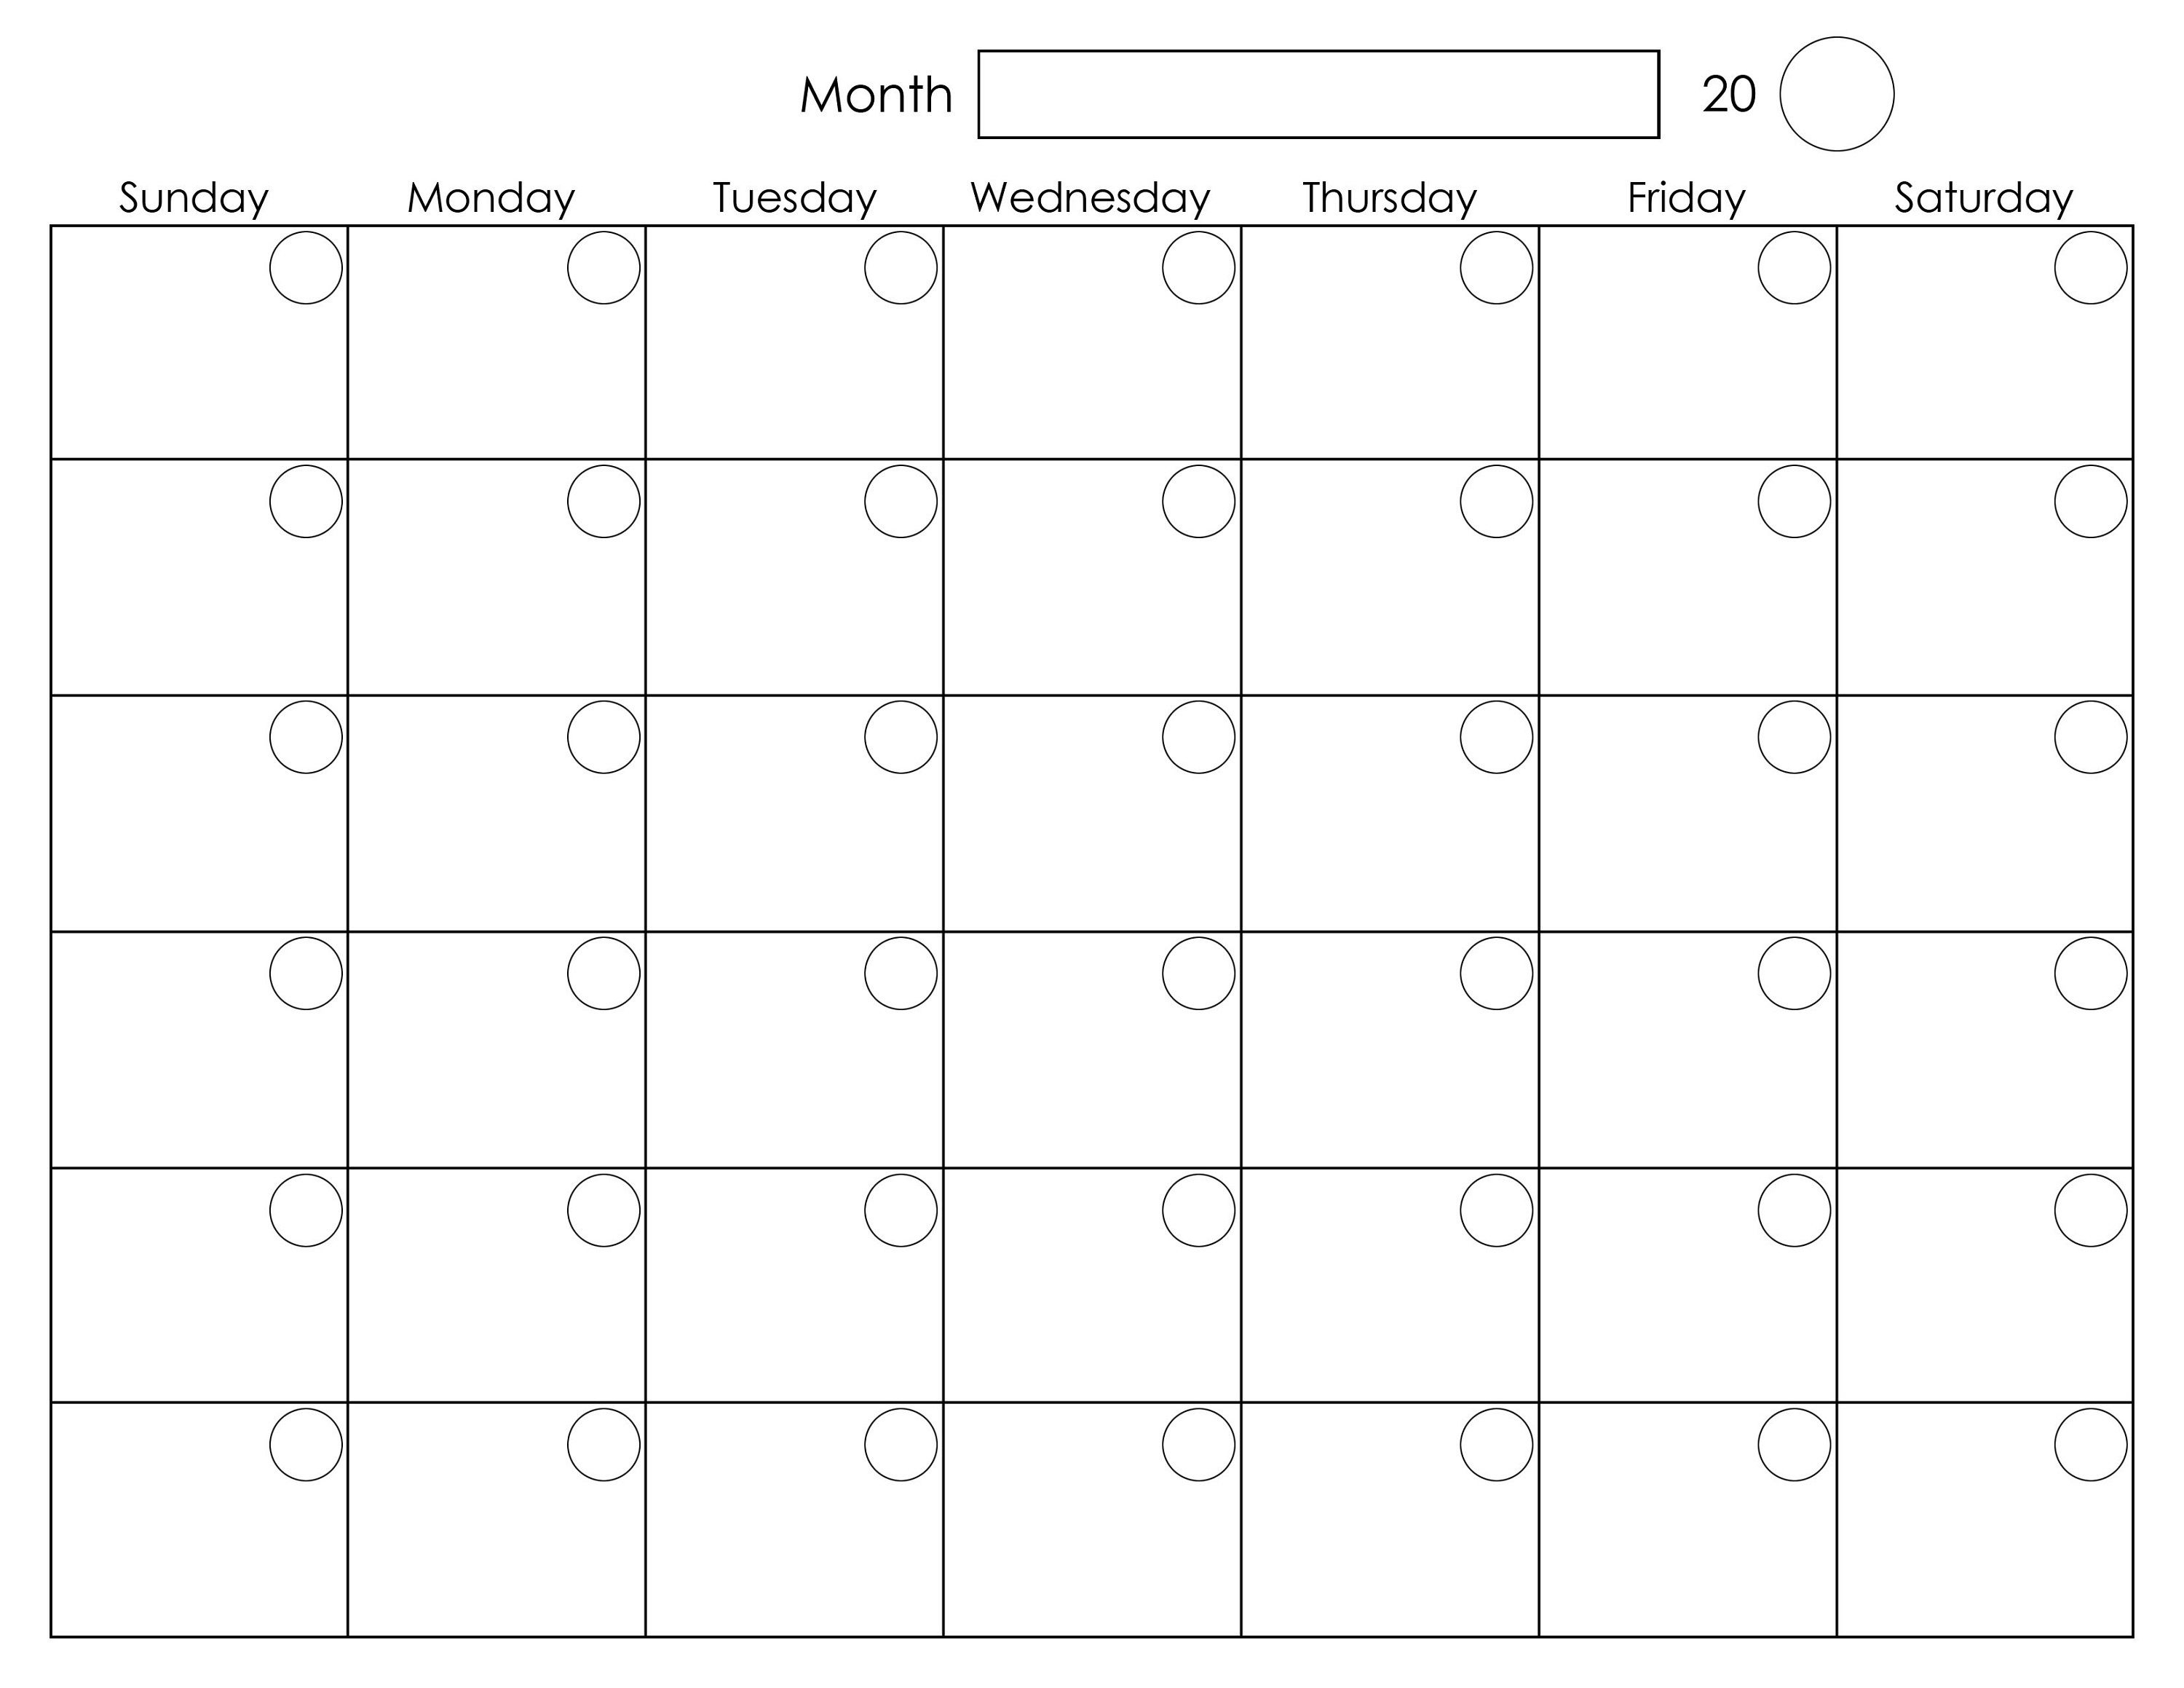 Printable Blank Monthly Calendar | Calendar Template Printable pertaining to Printable Blank Monthly Calendar With Lines